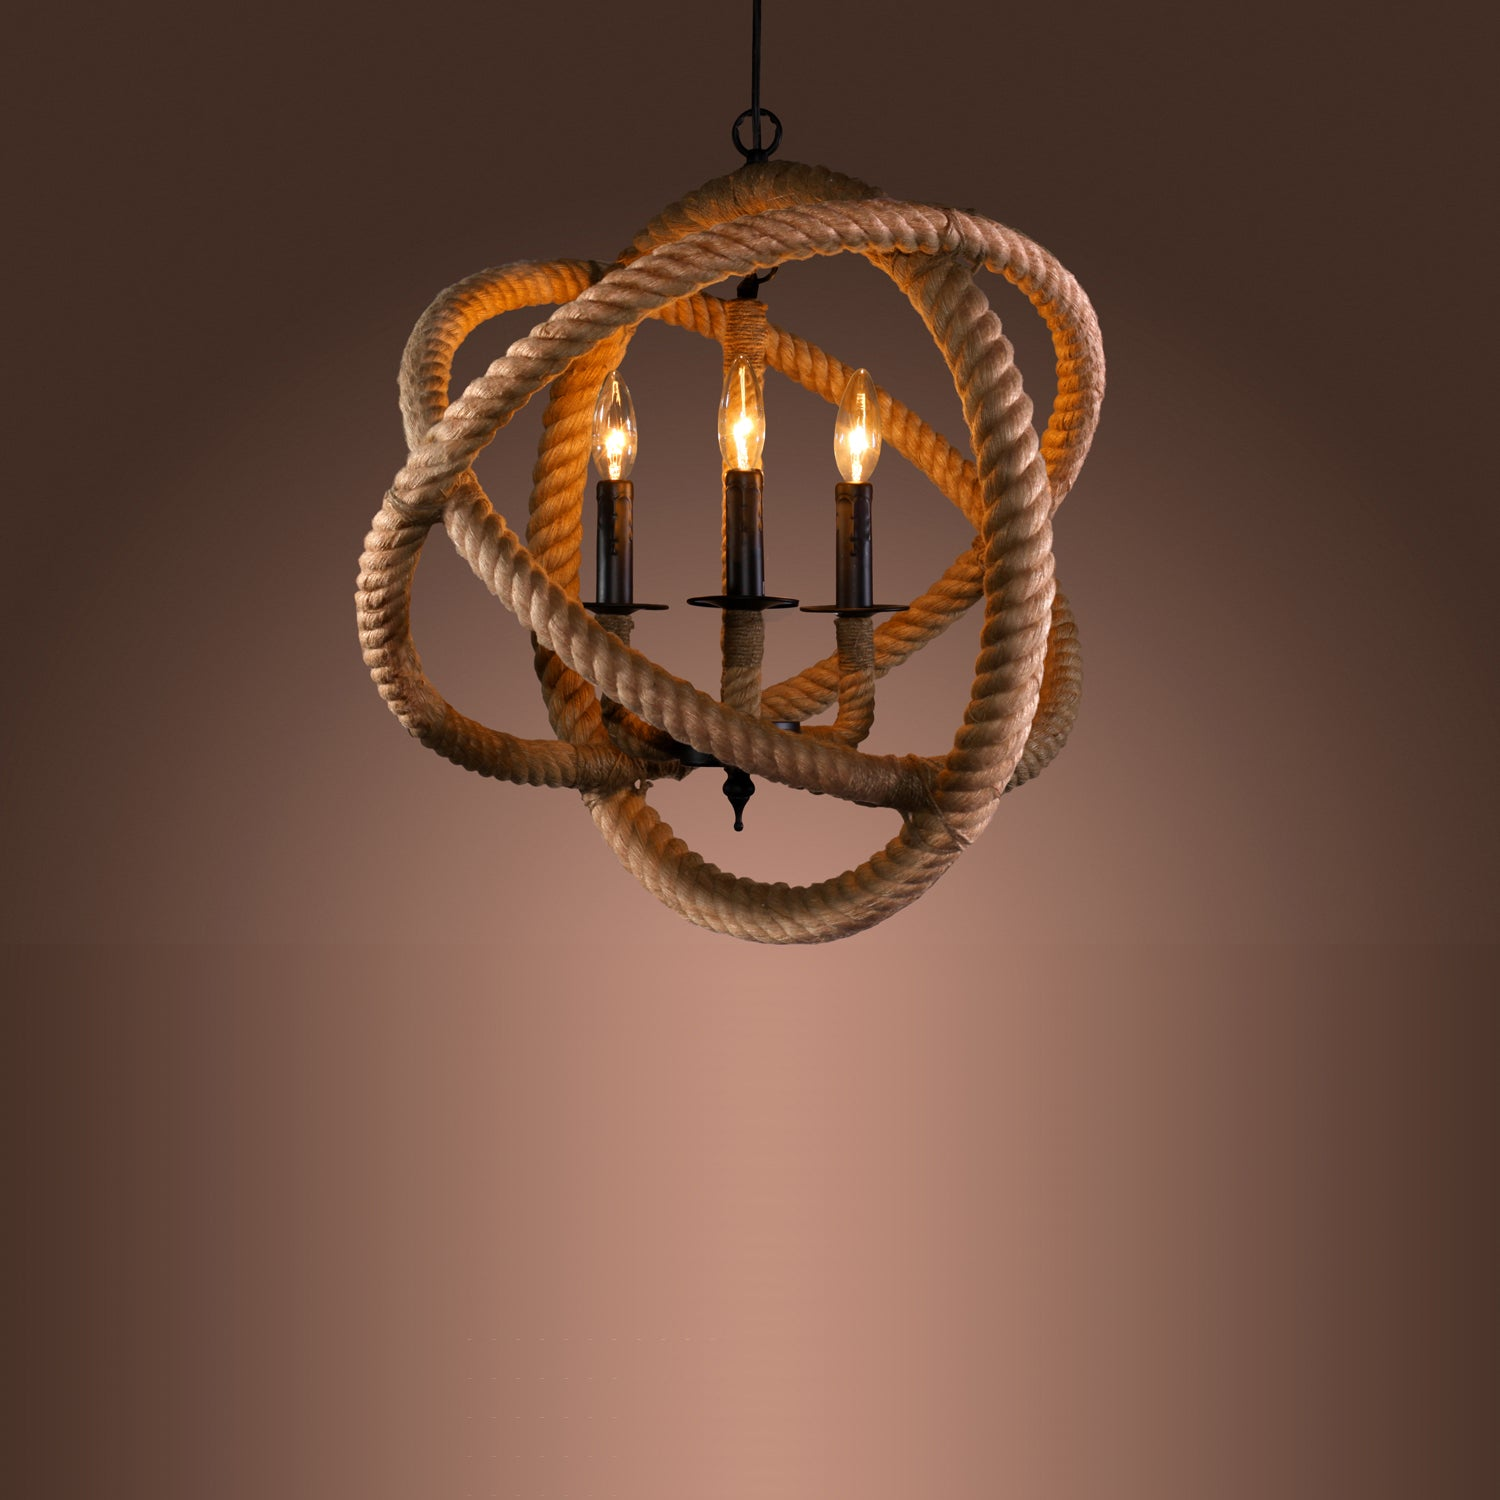 Natalia 3-light Rope Enclosed Chandelier with Bulbs